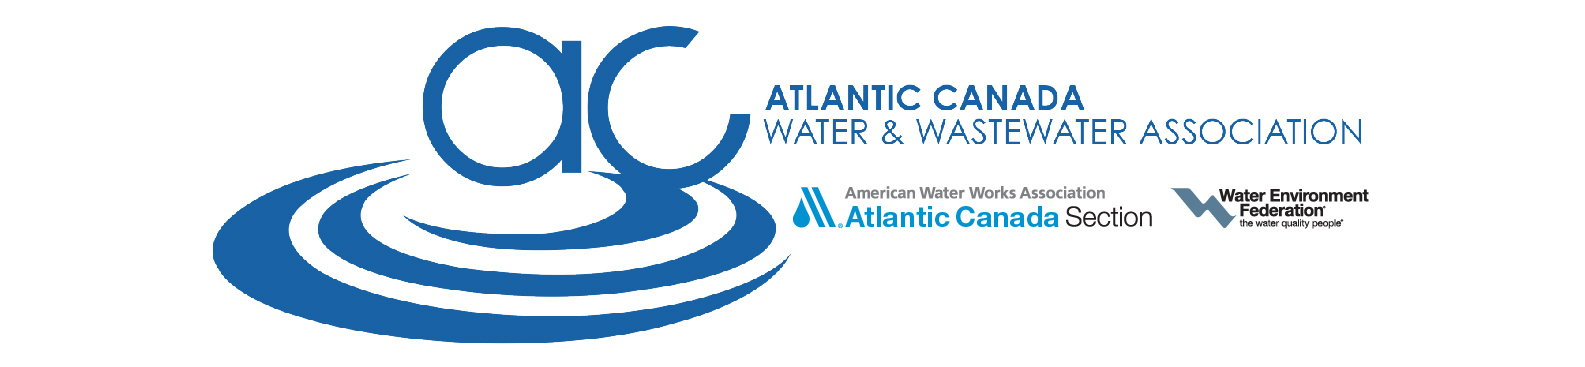 Events Calendar | American Water Works Association